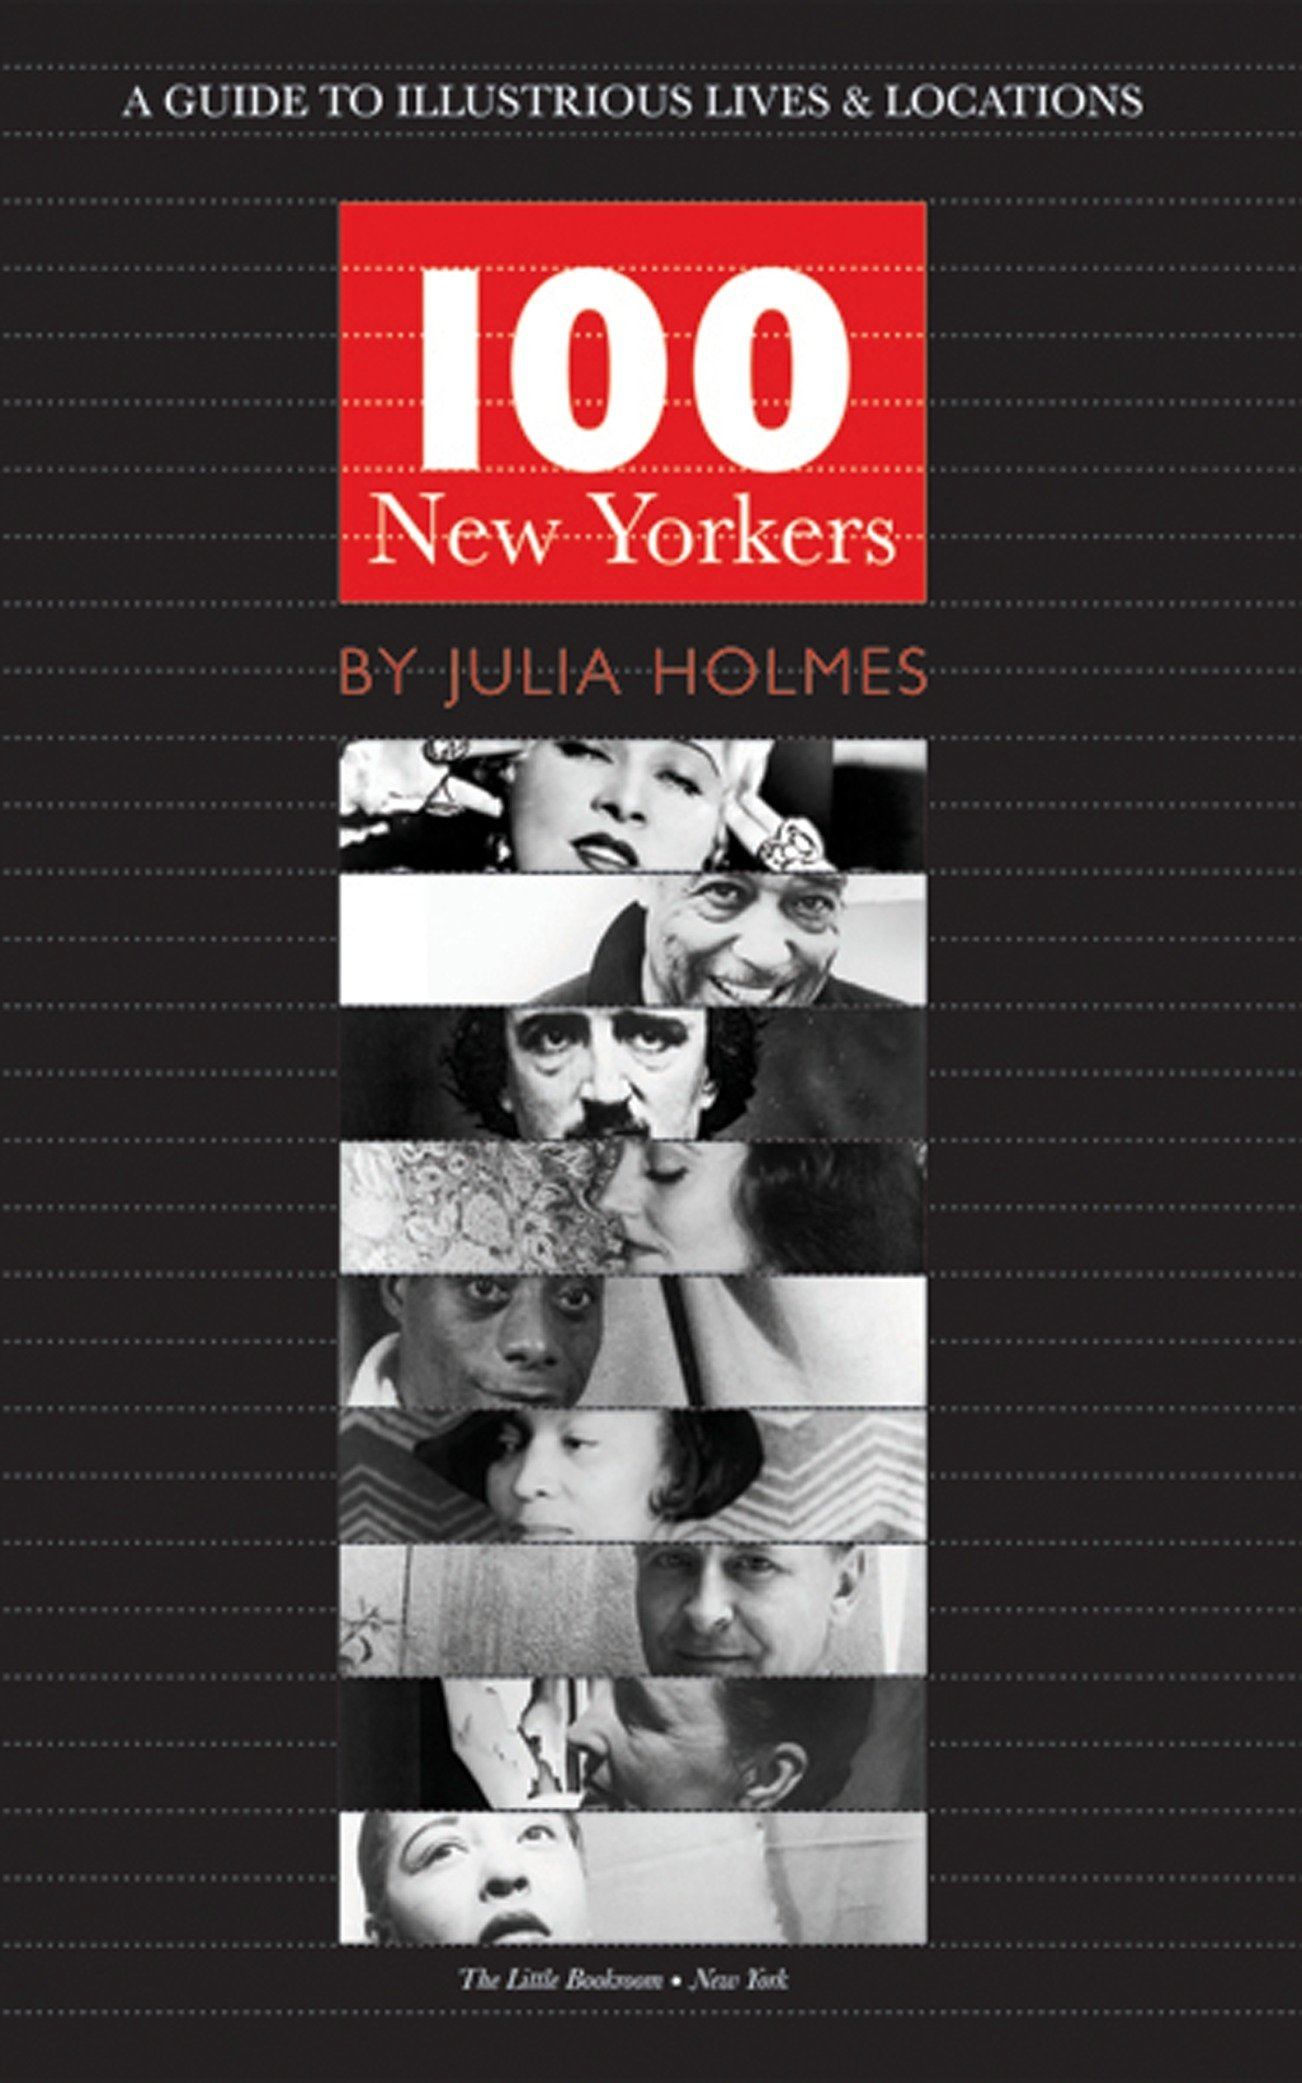 100 New Yorkers: A Guide to Illustrious Lives and Locations: Julia Holmes:  9781892145314: Books - Amazon.ca